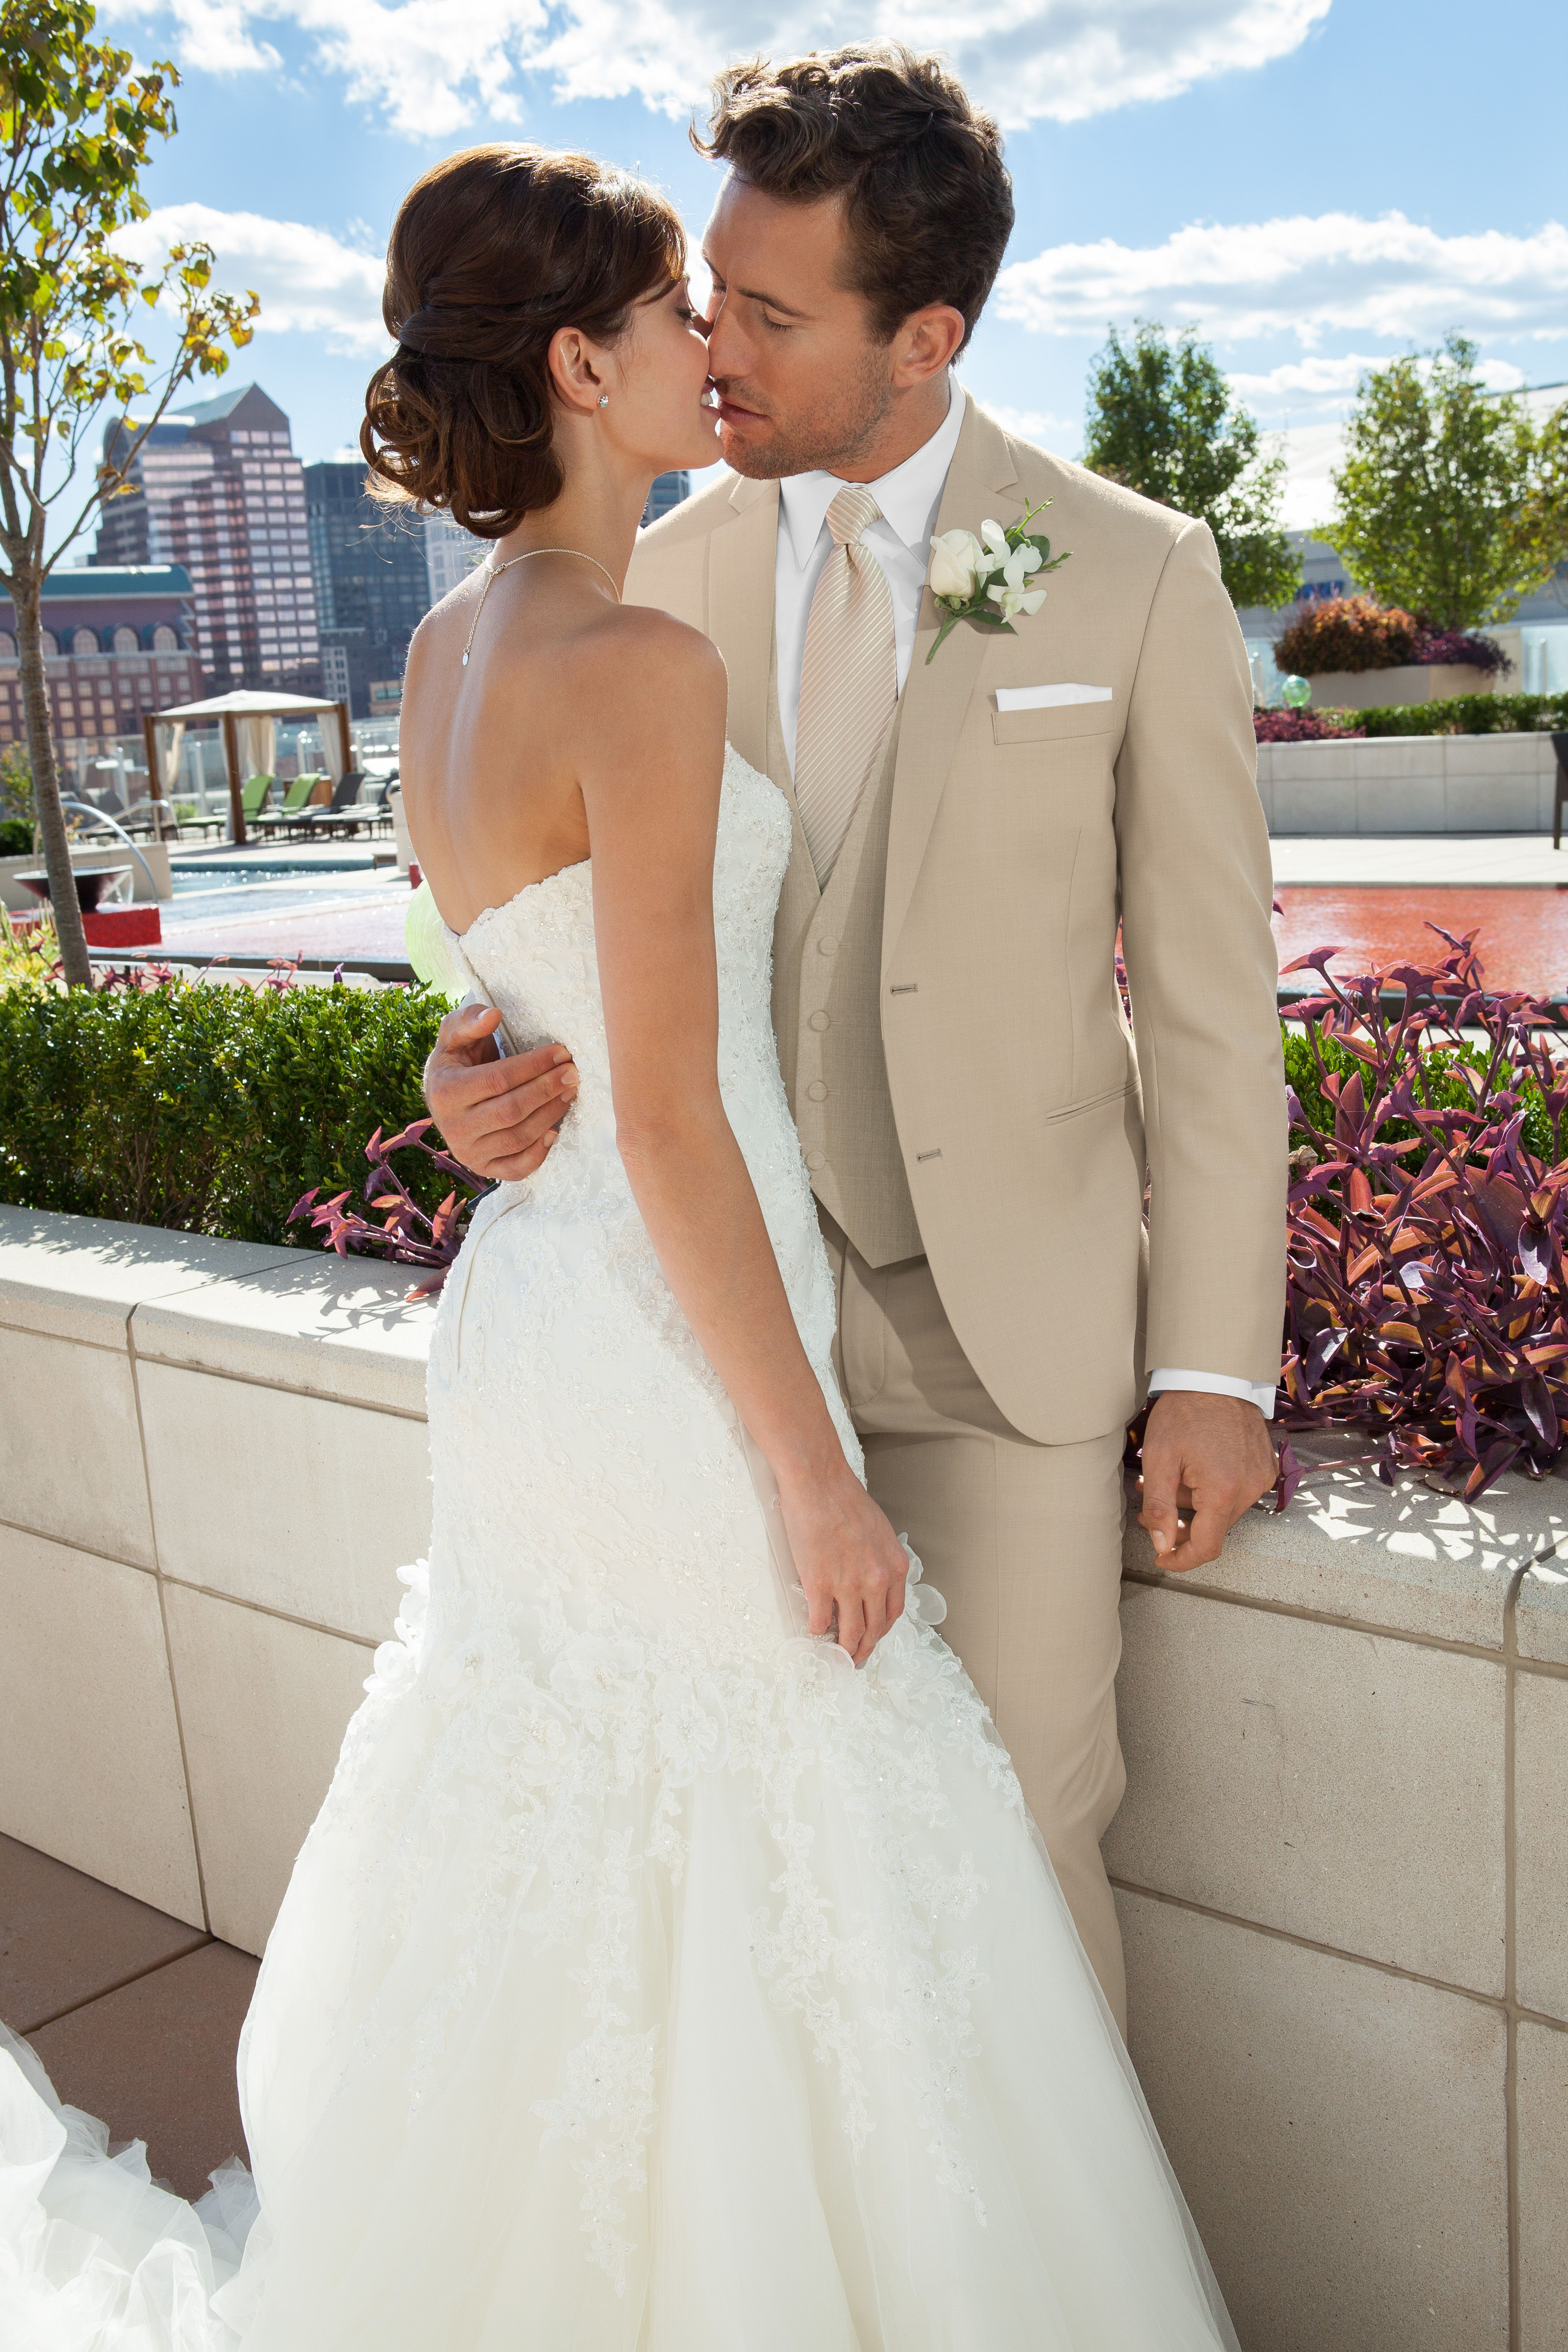 Tan 3 piece suit for more casual weddings | We rent Tuxedos ...